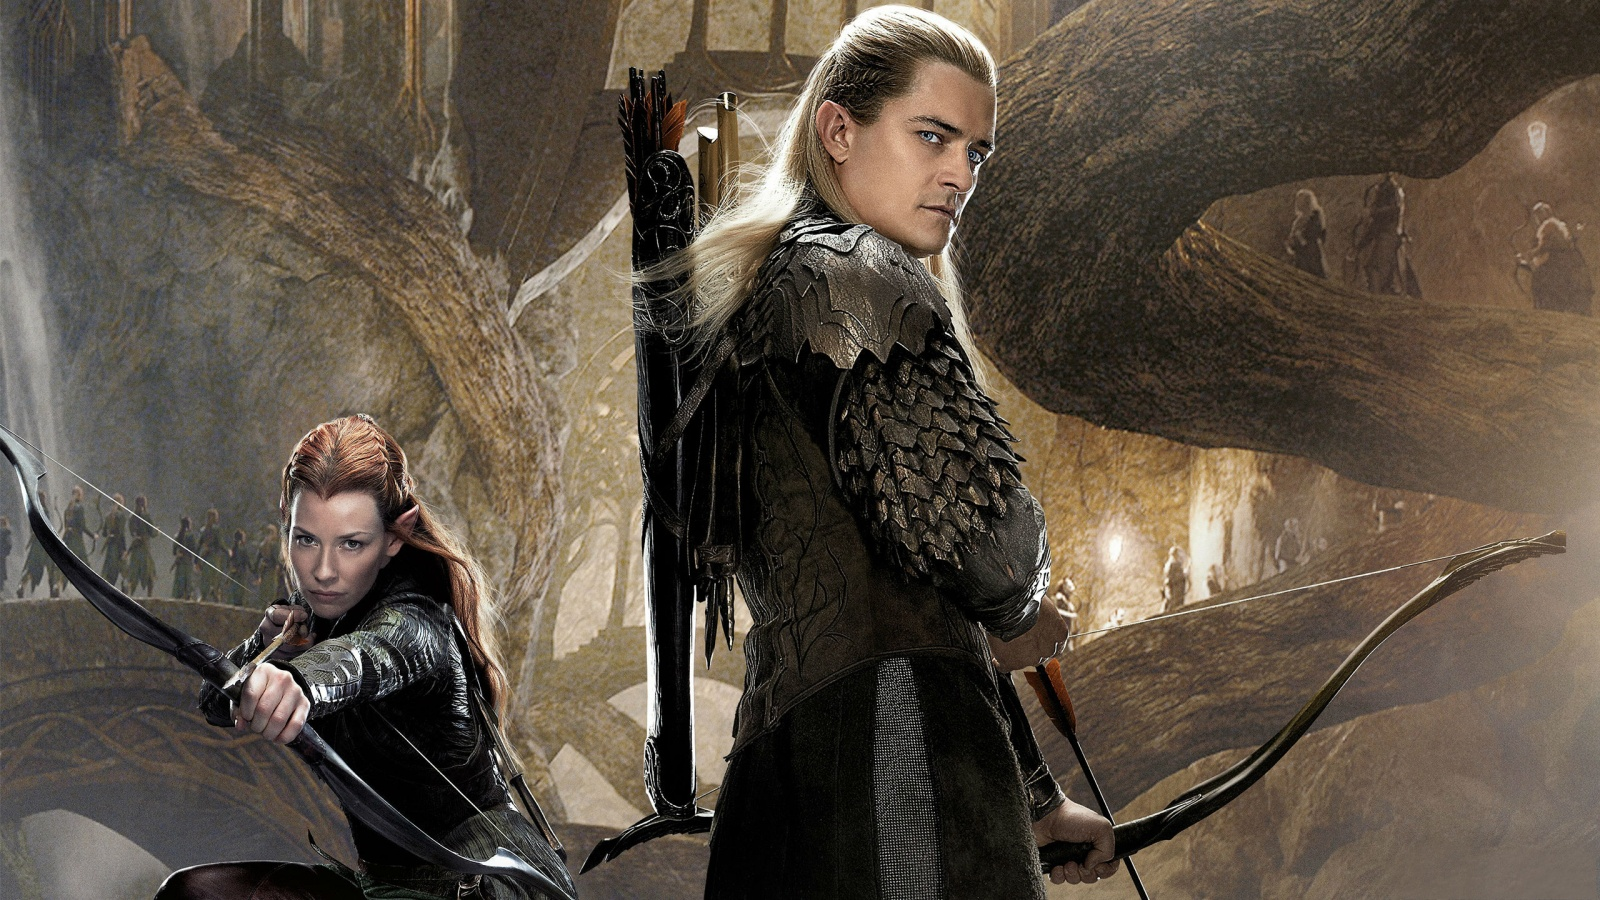 Tauriel Legolas In The Hobbit 2 Wallpapers   1600x900   690360 1600x900